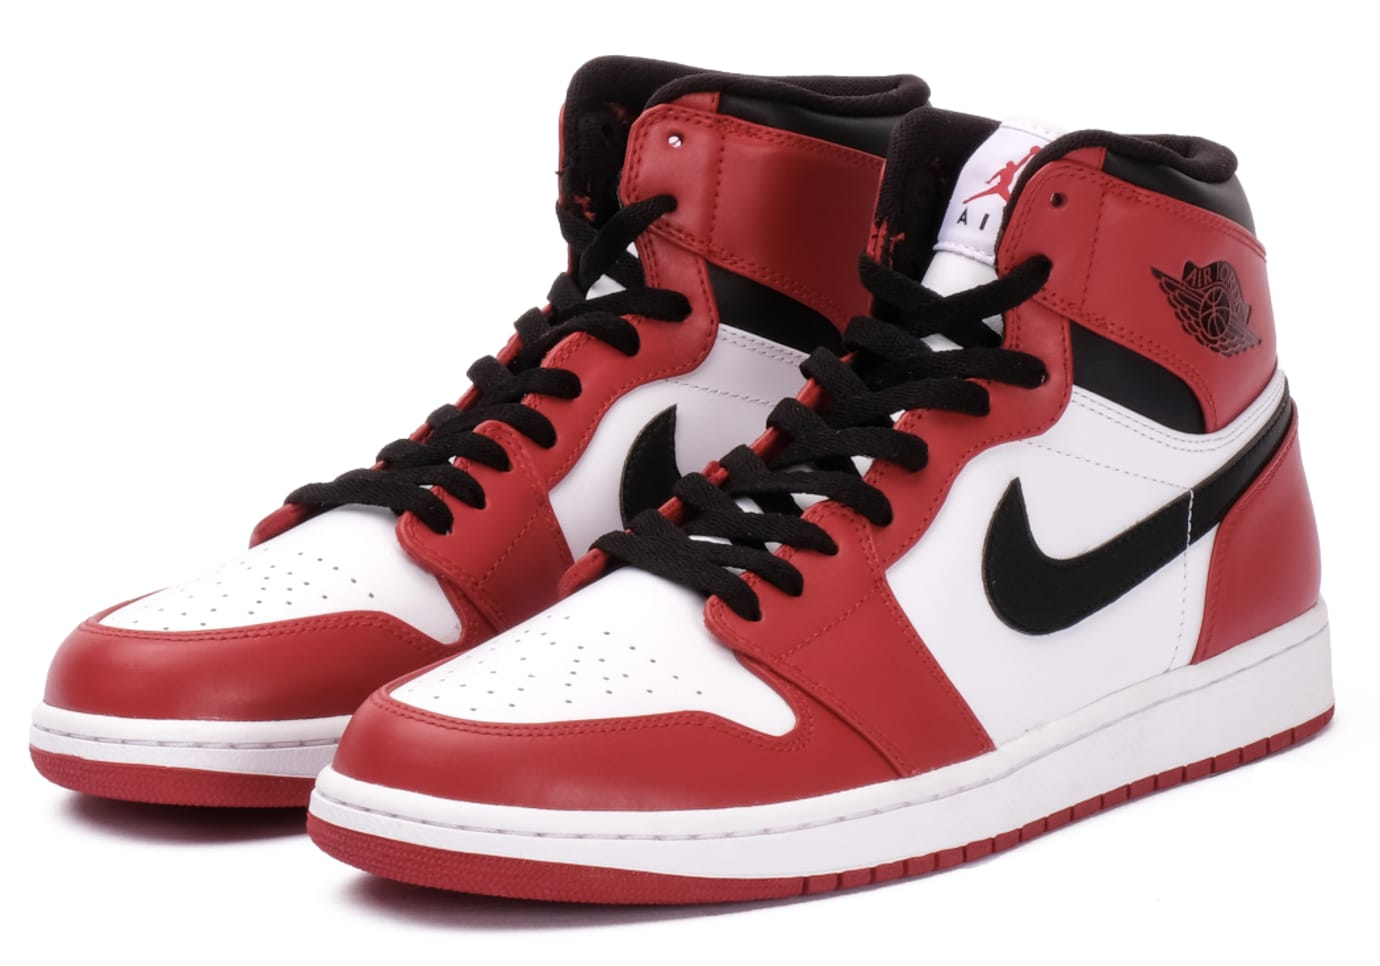 5b0d06e189e4af Air Jordan 1  Chicago  (Todd Gurley) Image via Grailed. Proceeds from all  sales will help purchase sneakers ...